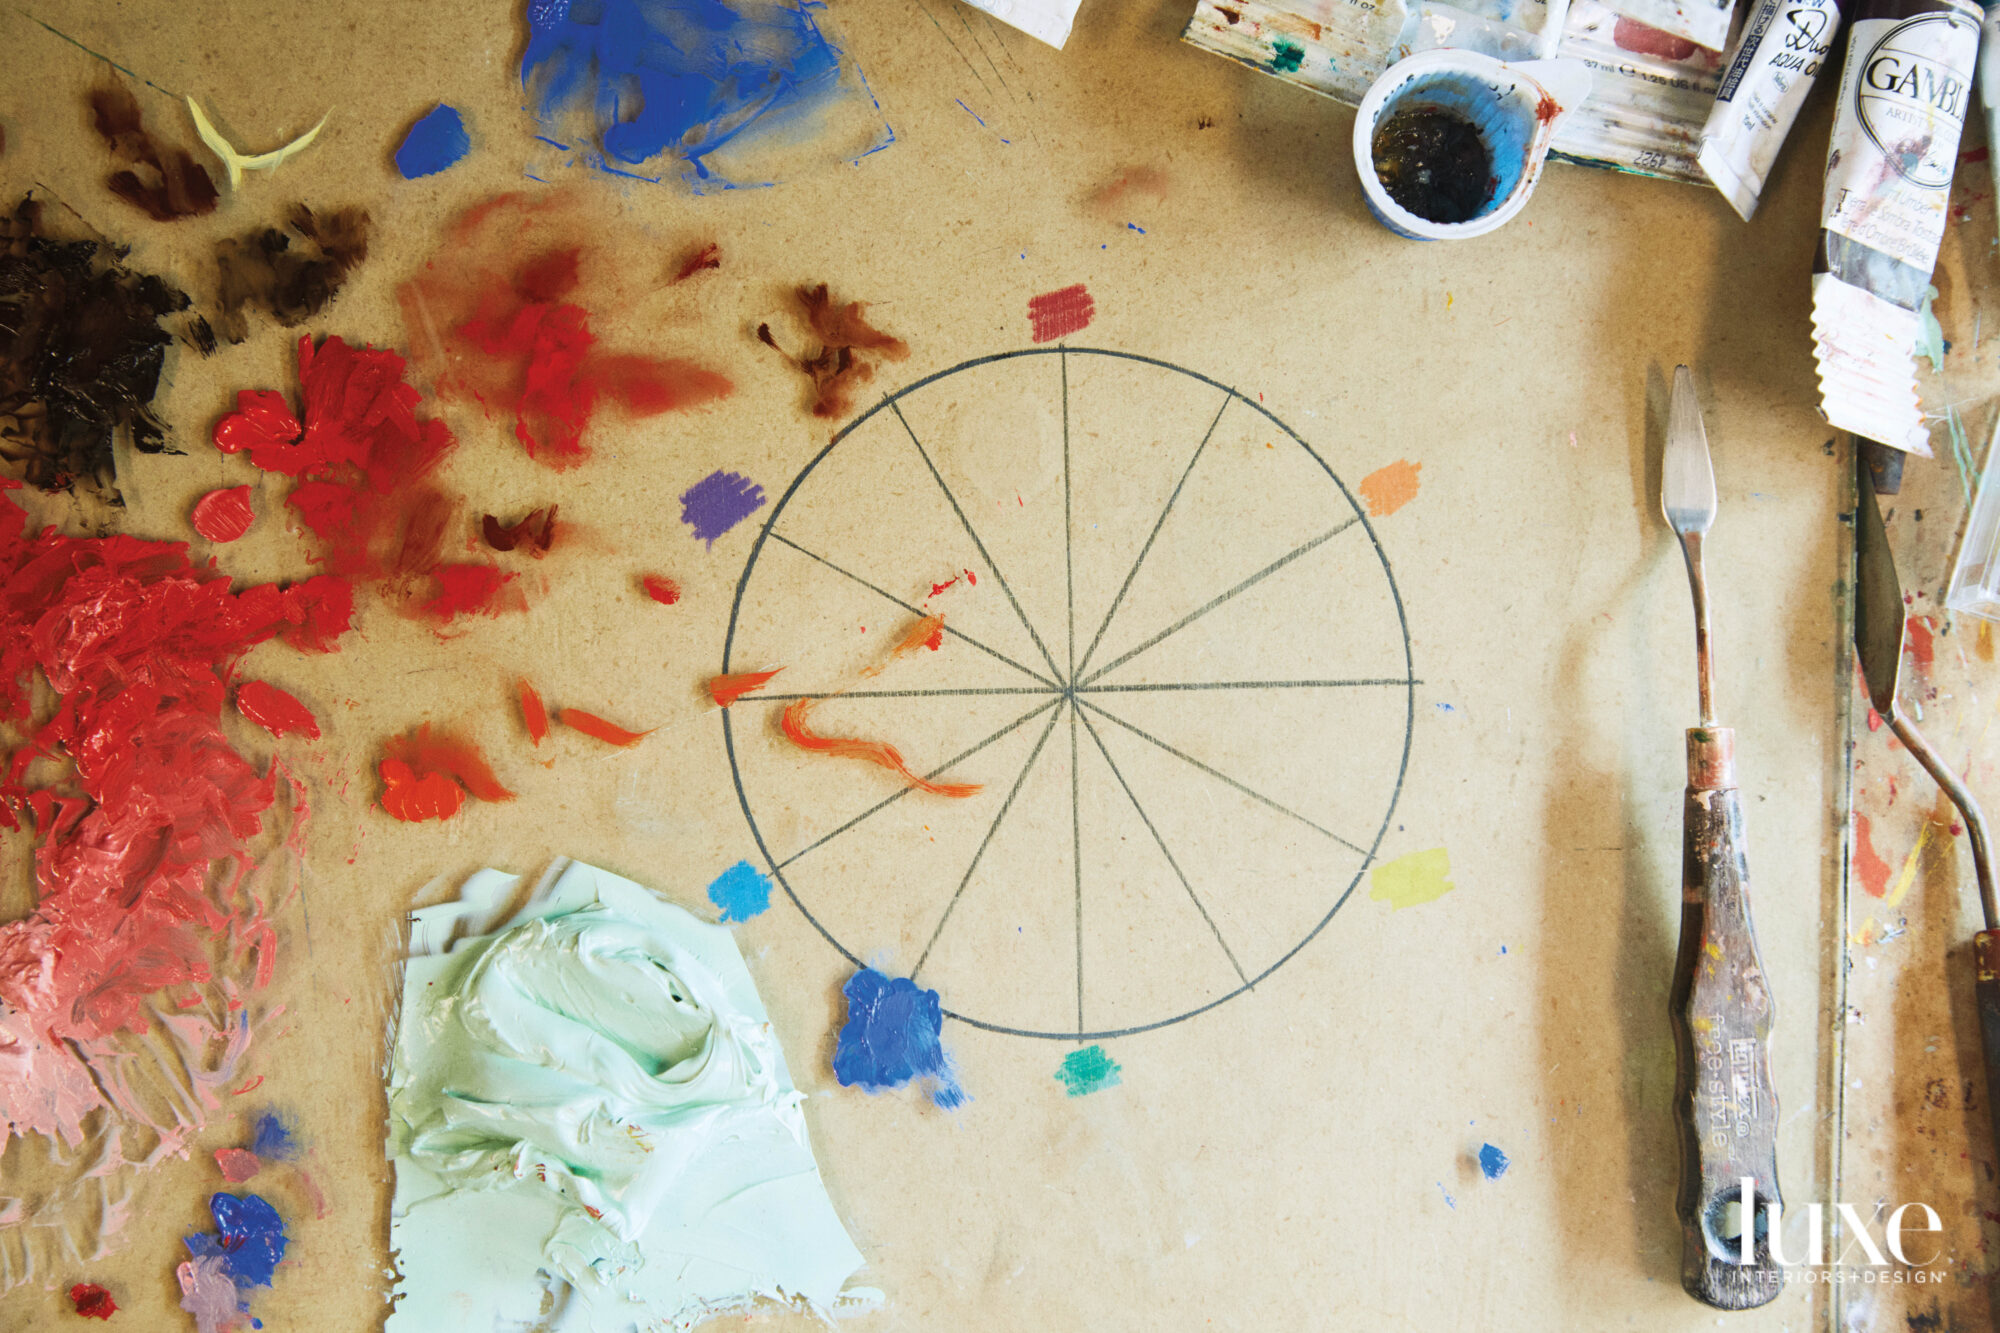 A drawing of a wheel with splash of paint surrounding it.